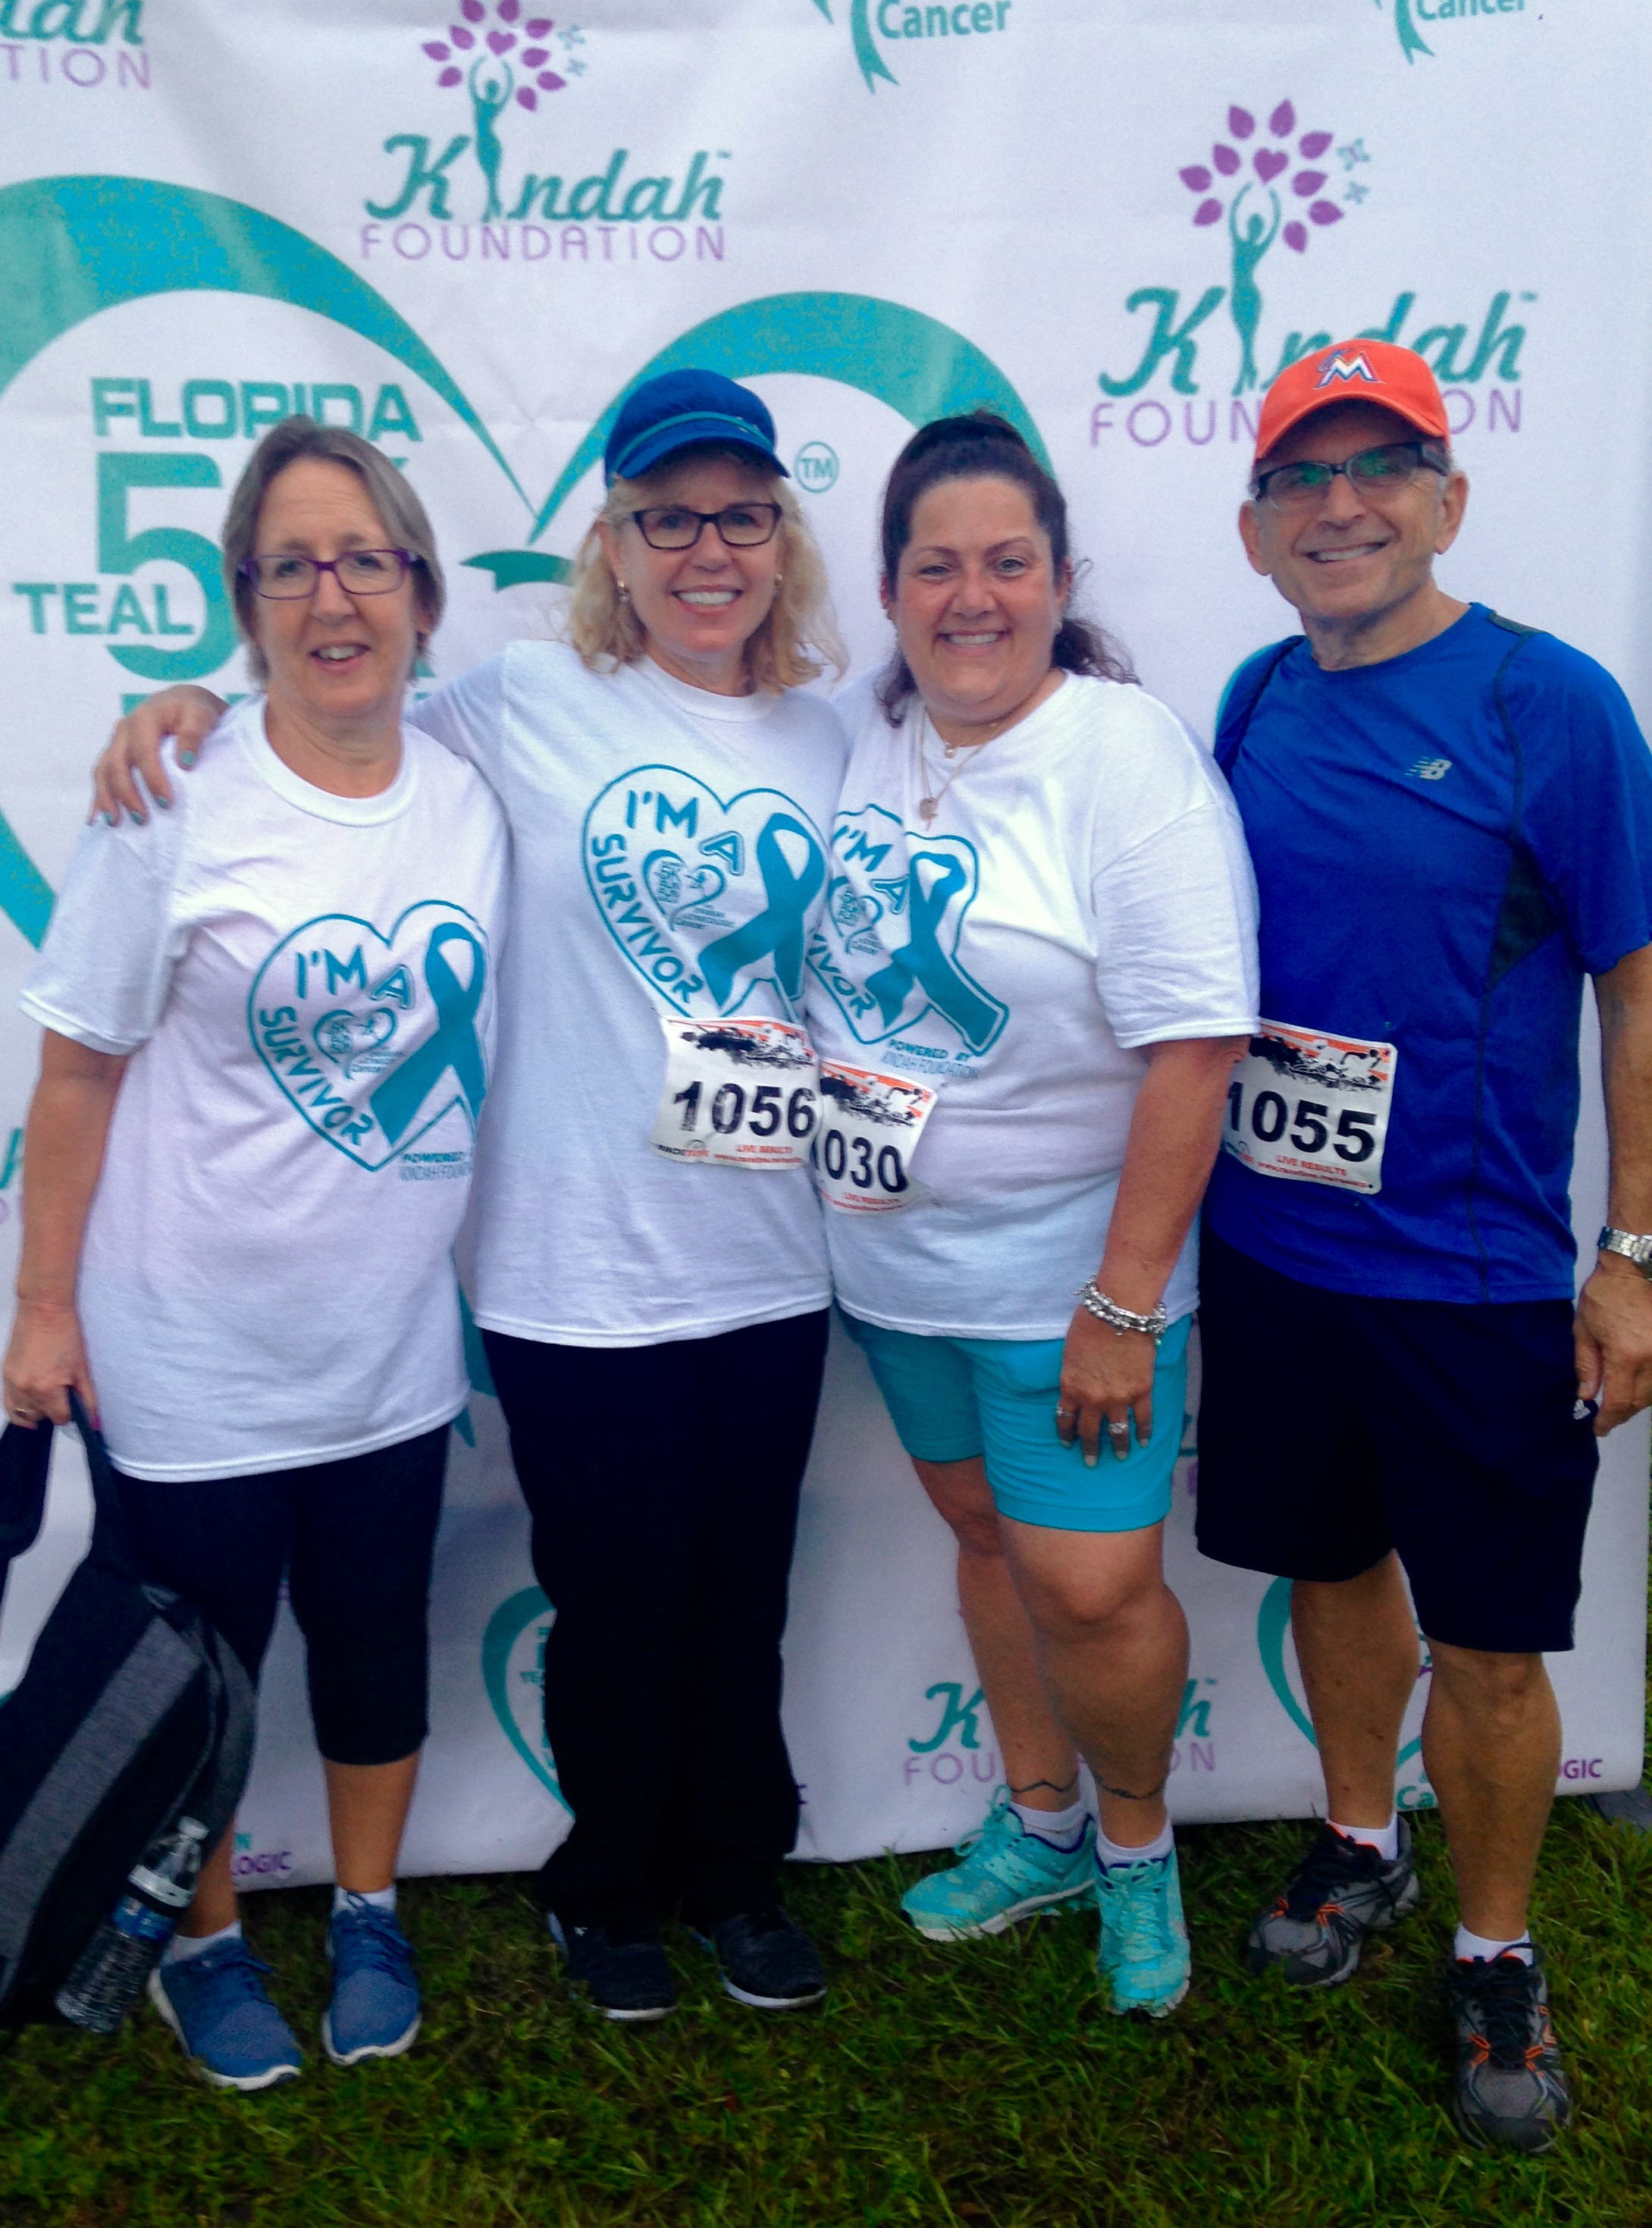 FullSizeRender 009 - Florida Teal 5K Run/ Fun Walk 2017